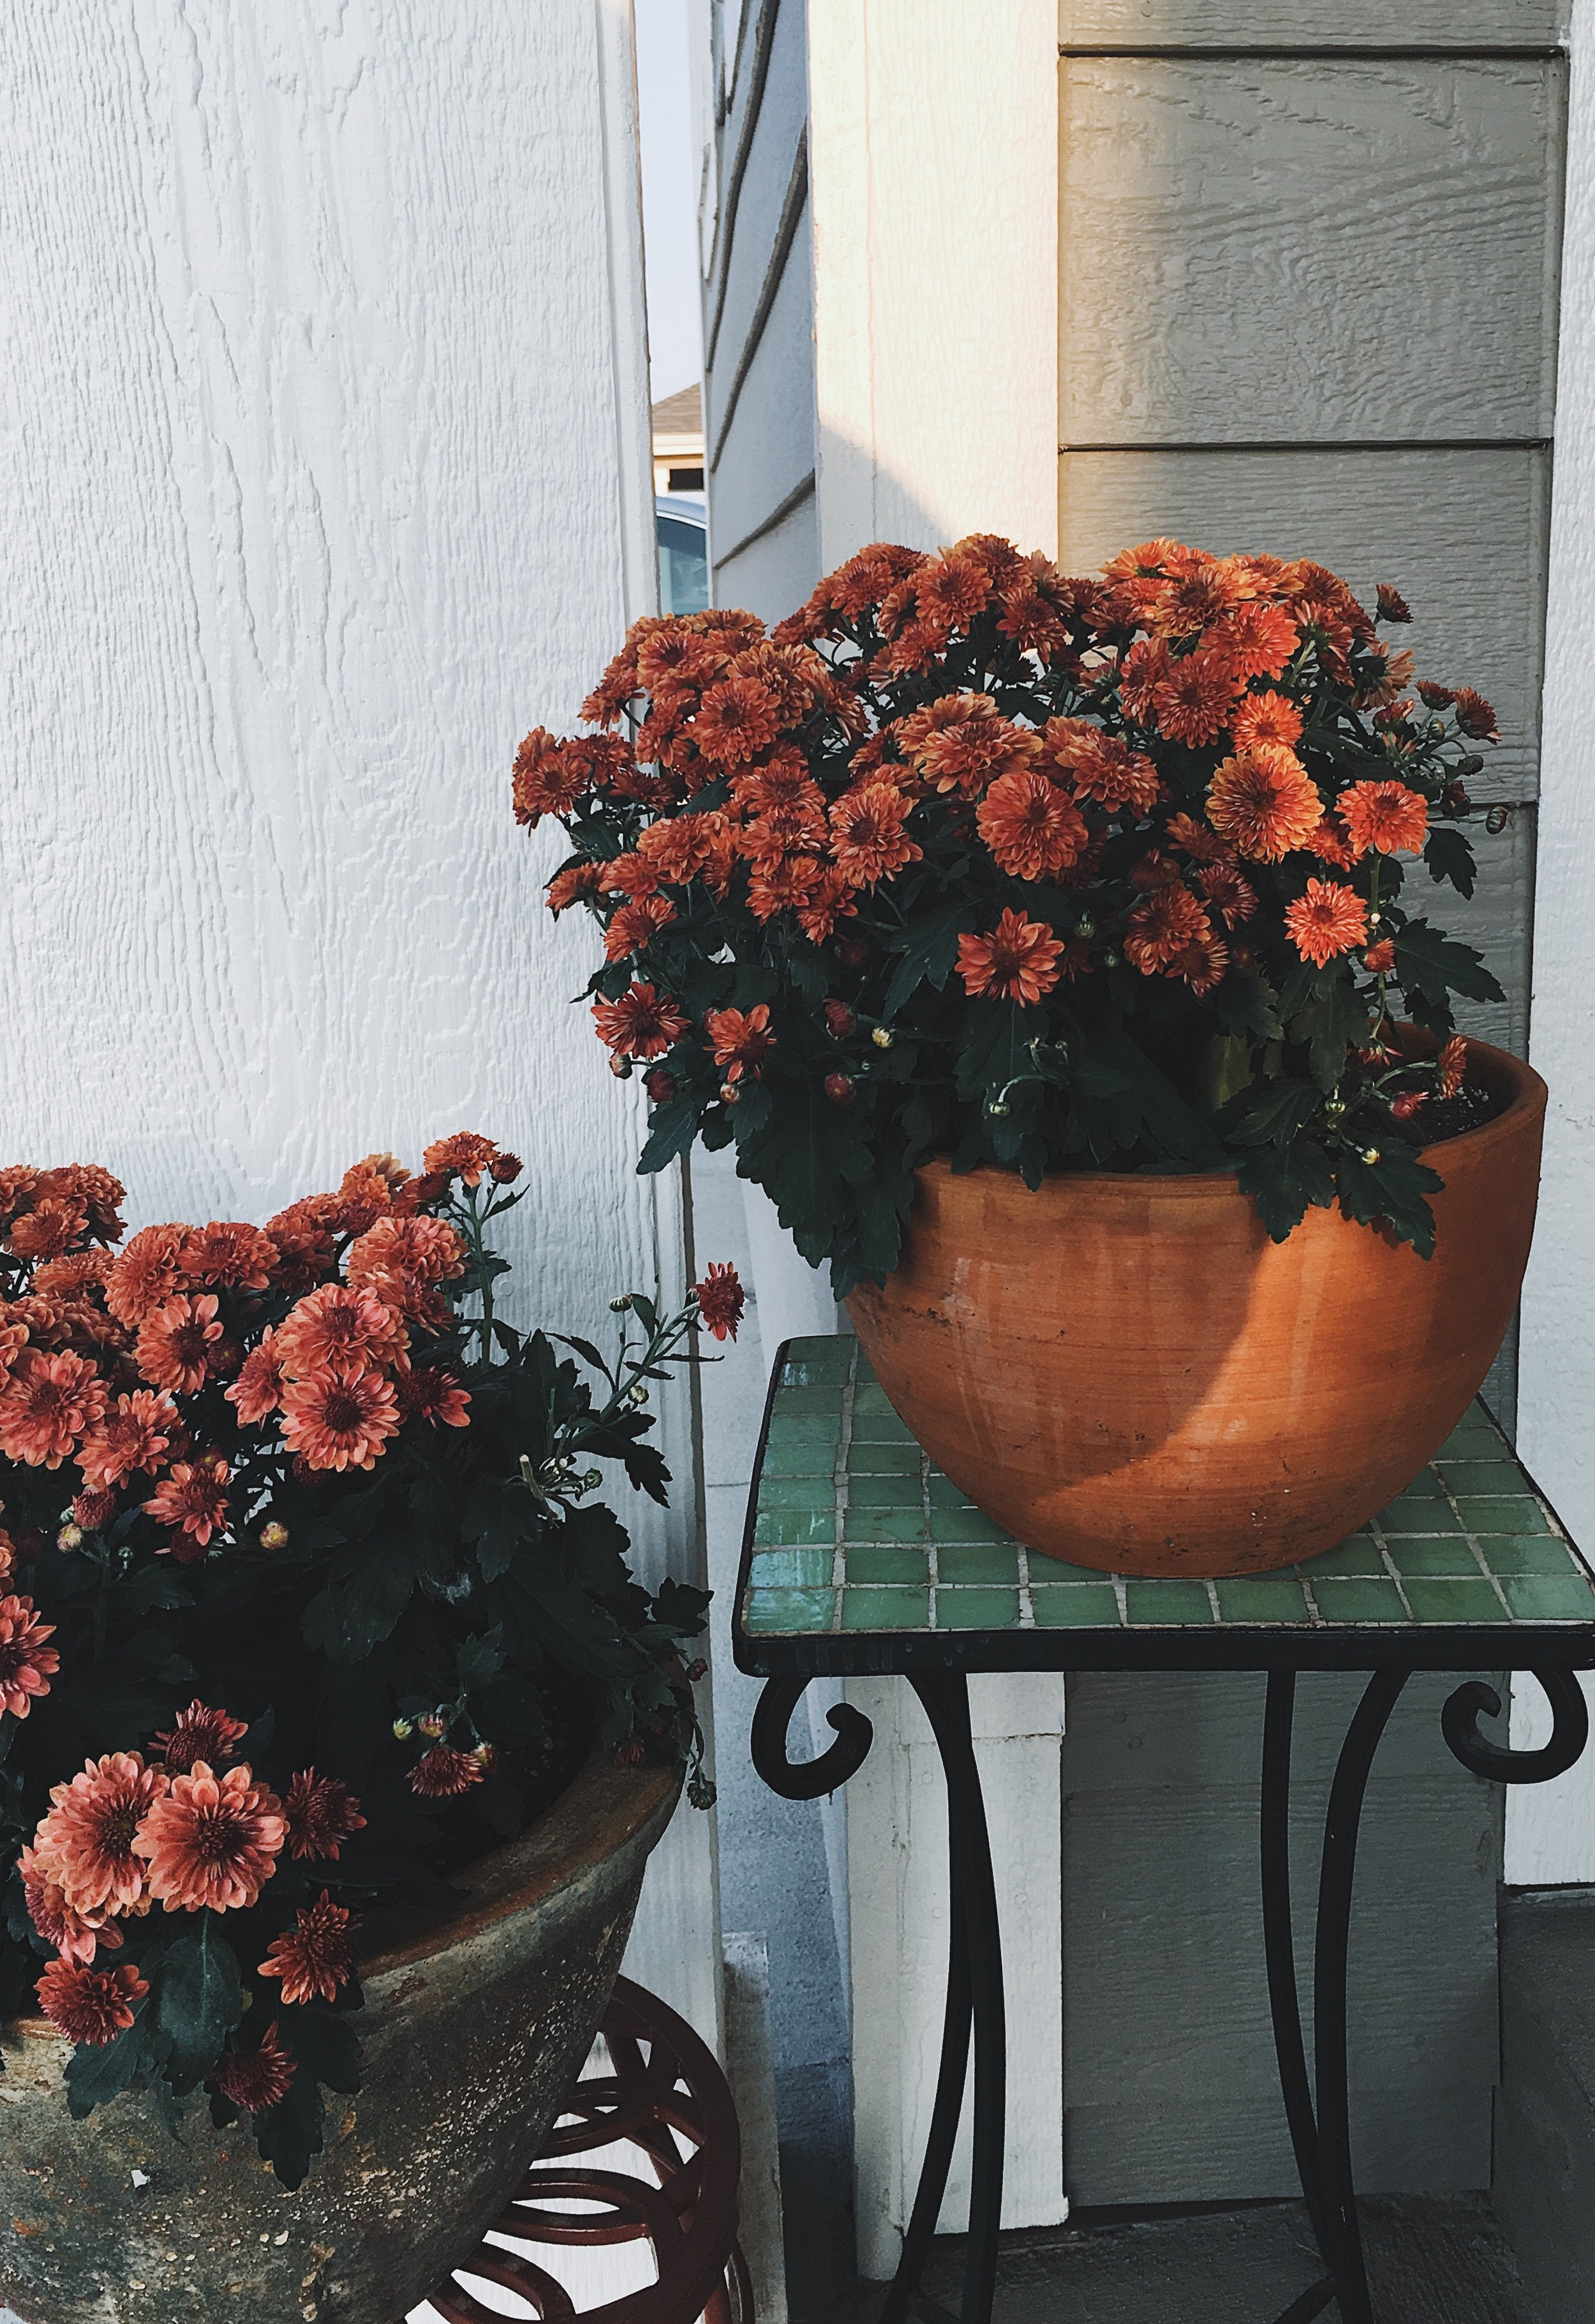 Watering the flowers in the morning